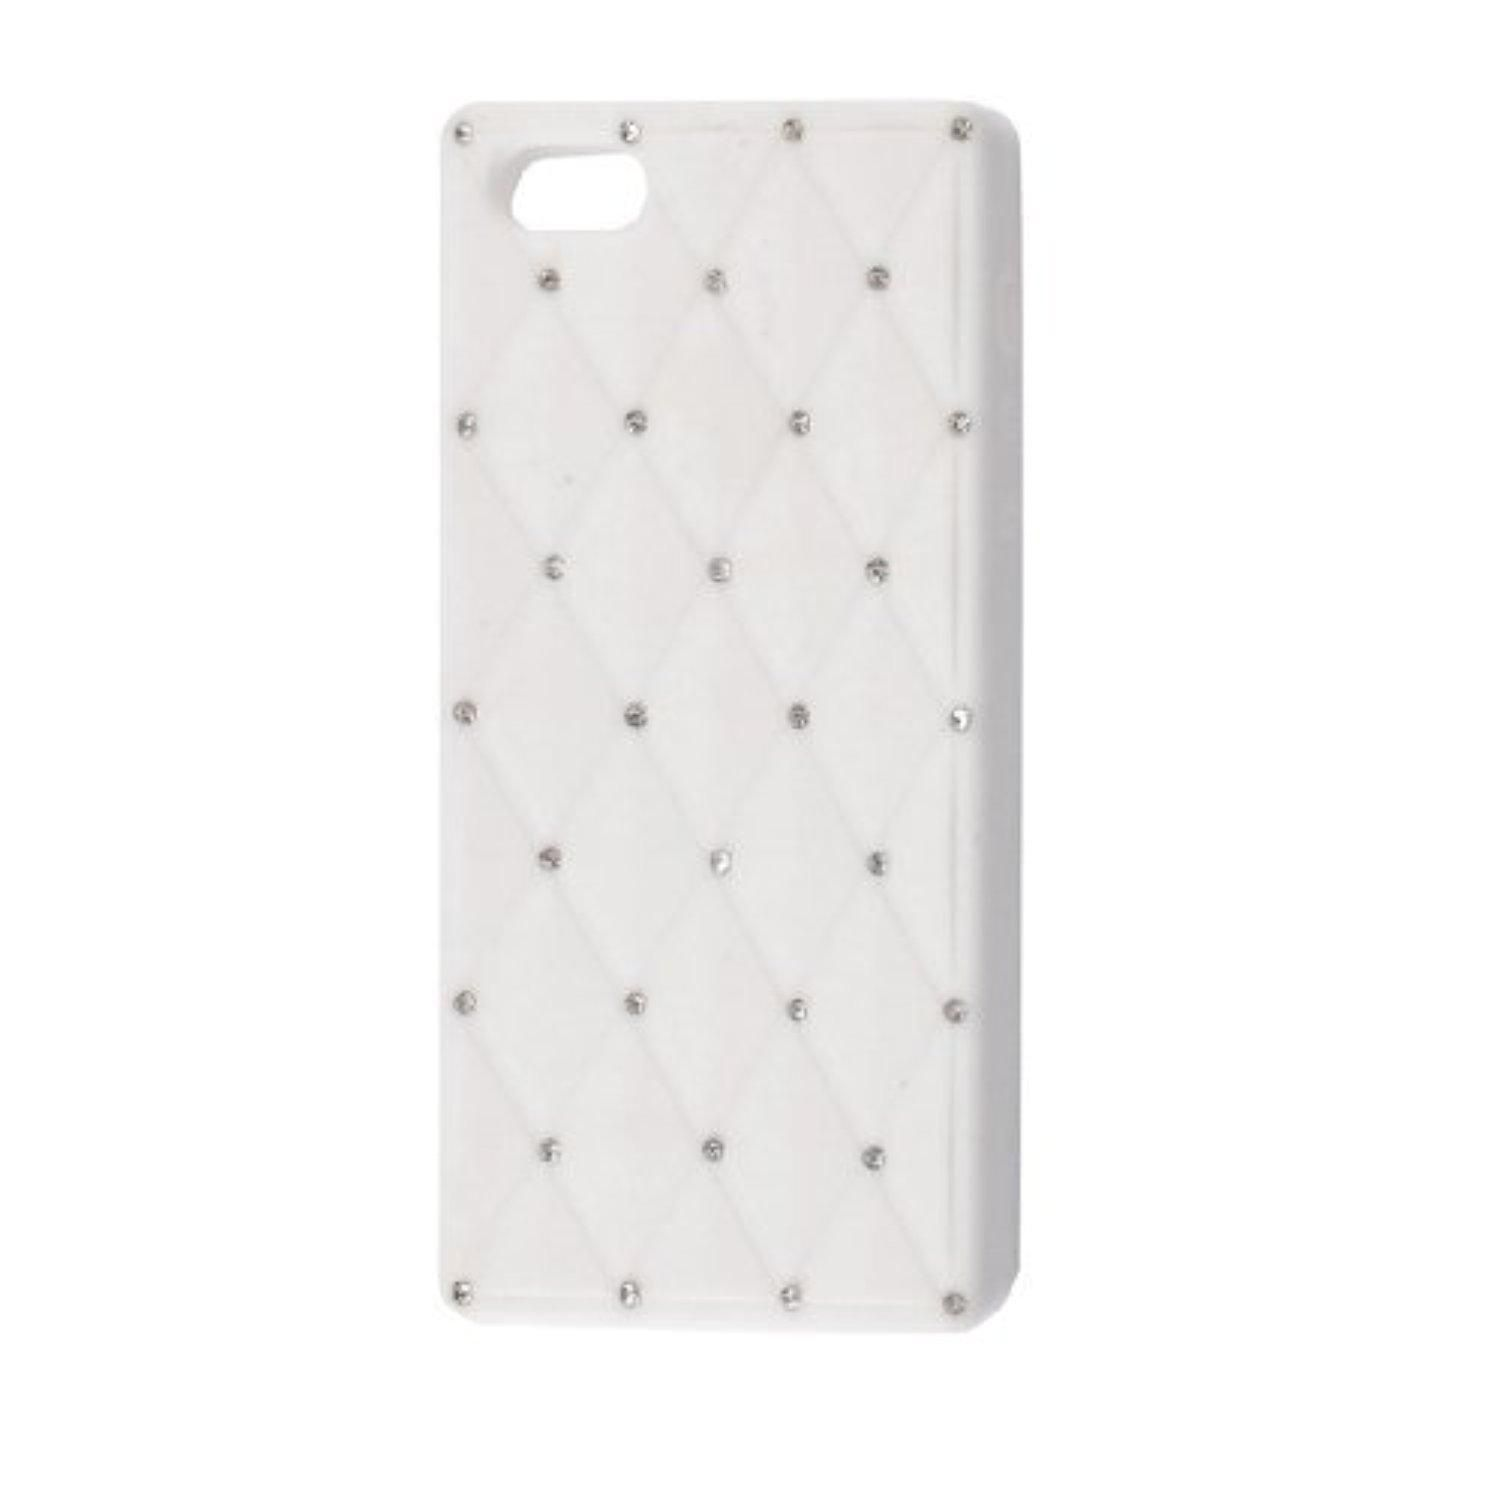 Water & Wood Argyle Print Faux Rhinestone Detail White Cover Shell Guard for iPhone 5 5G - Brought to you by Avarsha.com